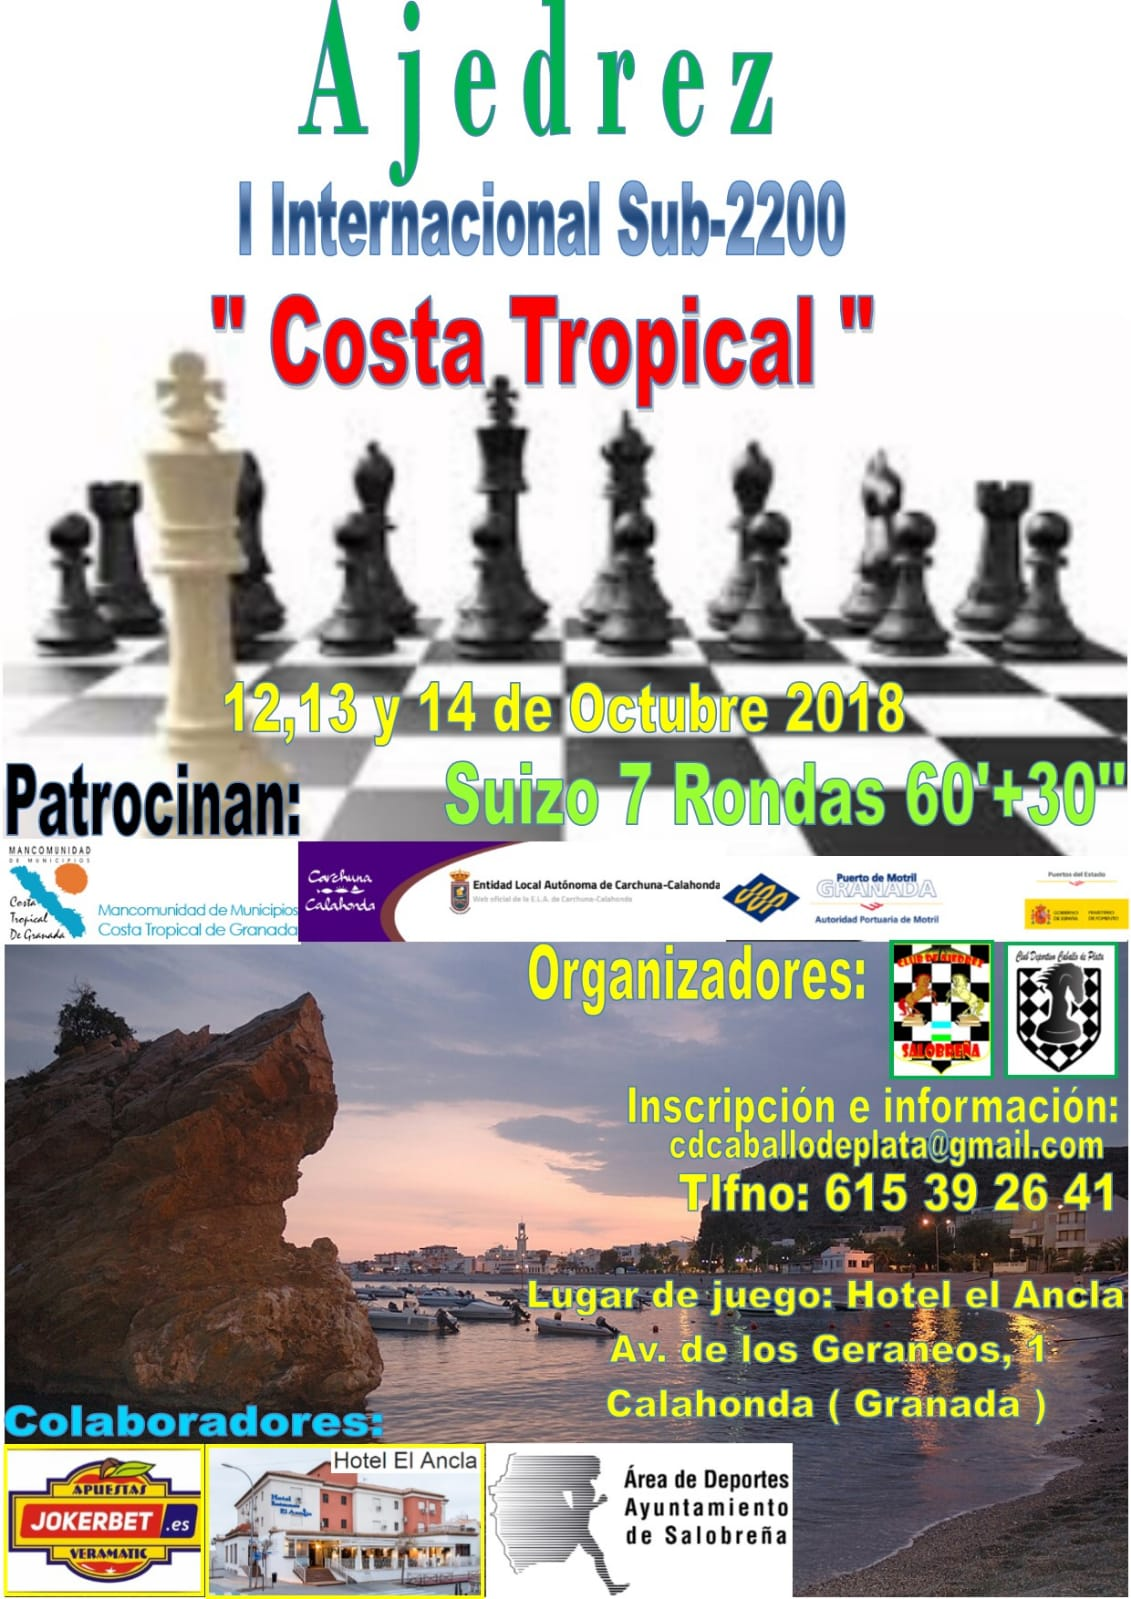 I Internacional sub 2200 Costa Tropical